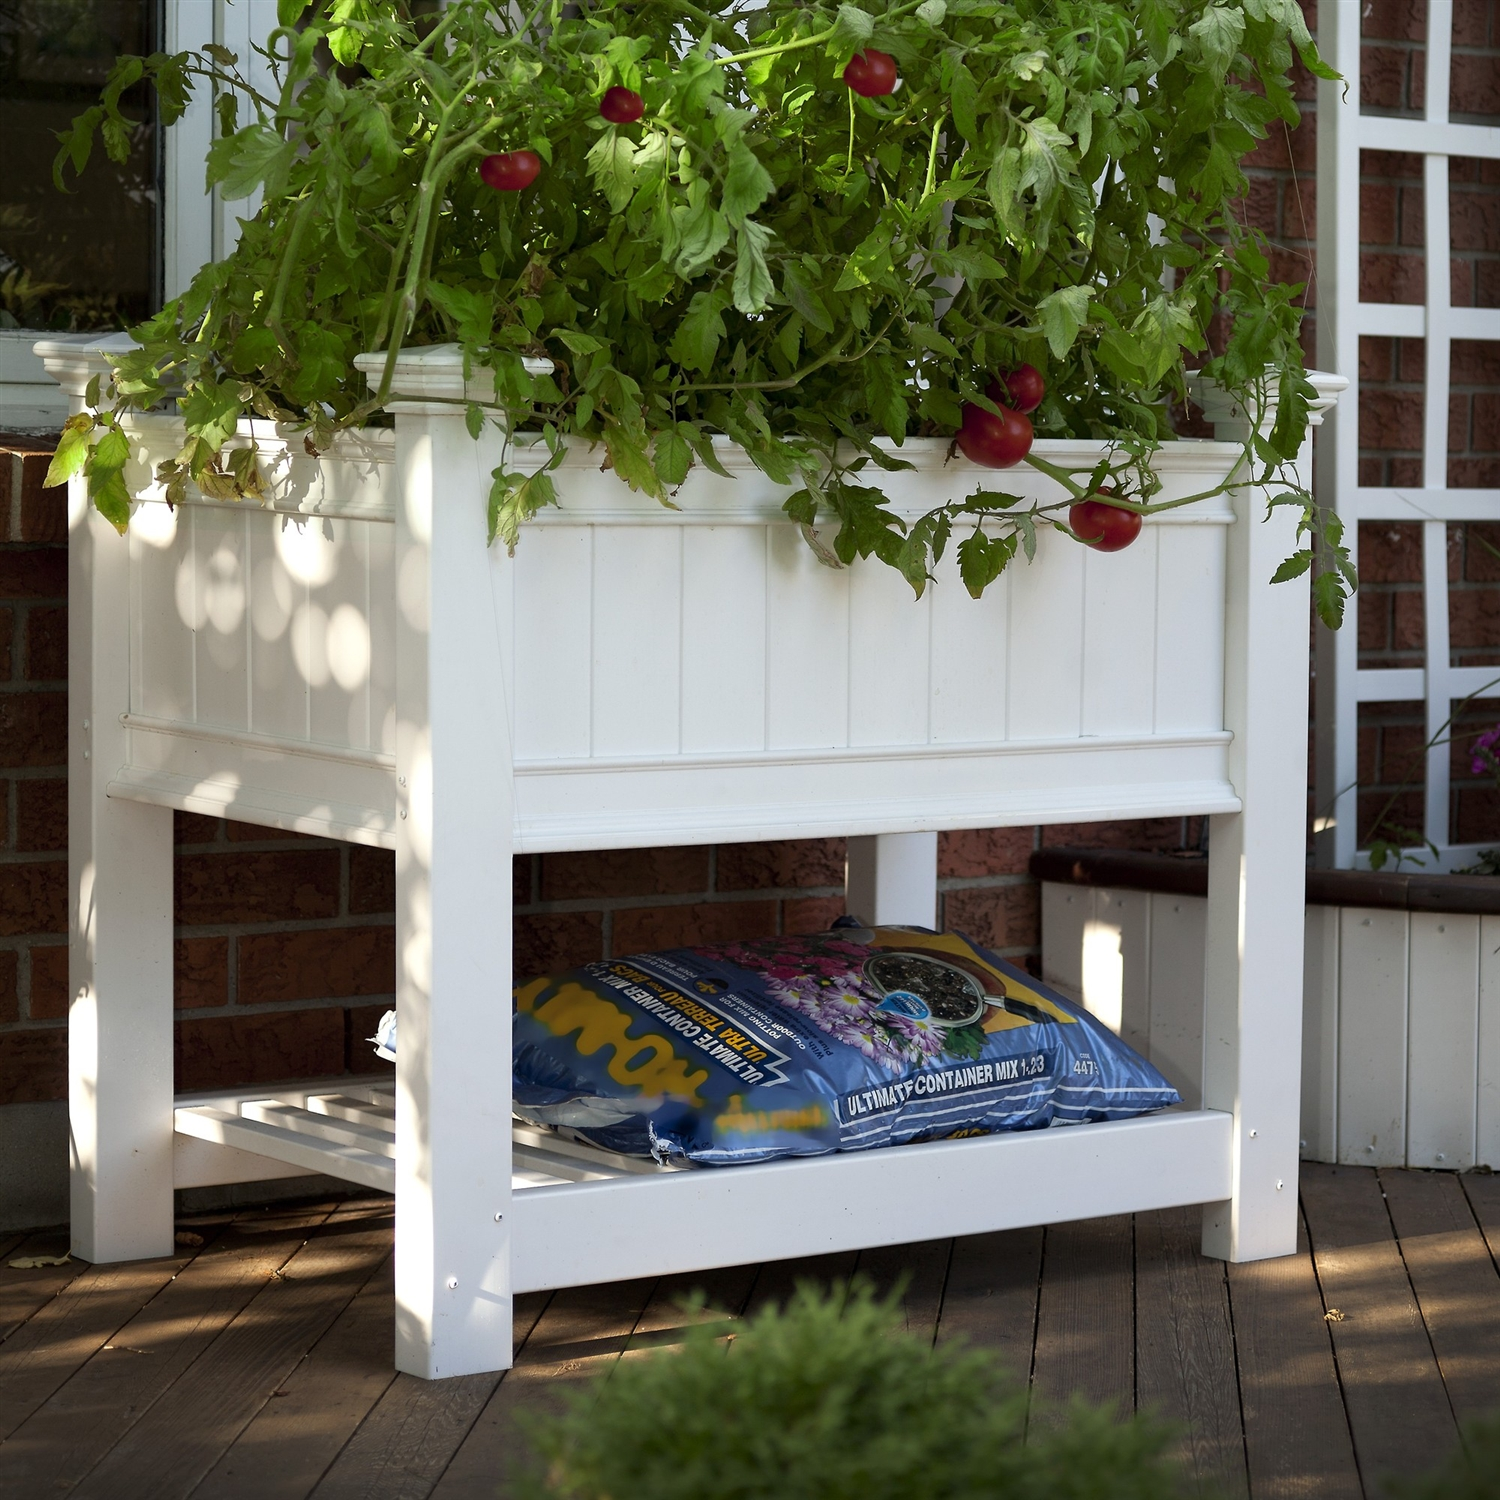 Elevated Planter Raised Grow Bed in White Vinyl, CRPW178 :  With this Elevated Planter Raised Grow Bed in White Vinyl you can grow perfect flowers and vegetables with less weeding, less pests and no soil compaction. Best of all, the Cambridge raised planter brings your garden to you. Attractively designed with architectural detailing to compliment any outdoor setting; the Cambridge Raised Planter even has a shelf to store pots, soil and gardening equipment. The Cambridge Raised Planter is strong and durable and will never need to be painted or stained. The occasional rinse with a garden hose is all you'll need to do to keep your planter box looking great year after year. This product comes with a 20 year manufacturer's warranty against yellowing, warping, cracking, and rotting. Maintenance free; Water Resistant: Yes Warp Resistant: Yes; Rot Resistant: Yes Crack Proof: Yes; Fade Resistant: Yes Anti-Shock: Yes; Number of Tiers: 1 Capacity: 131 gallons Ounces; Hardware Included: Yes Recycled Content: 0%; Eco-Friendly: Yes.